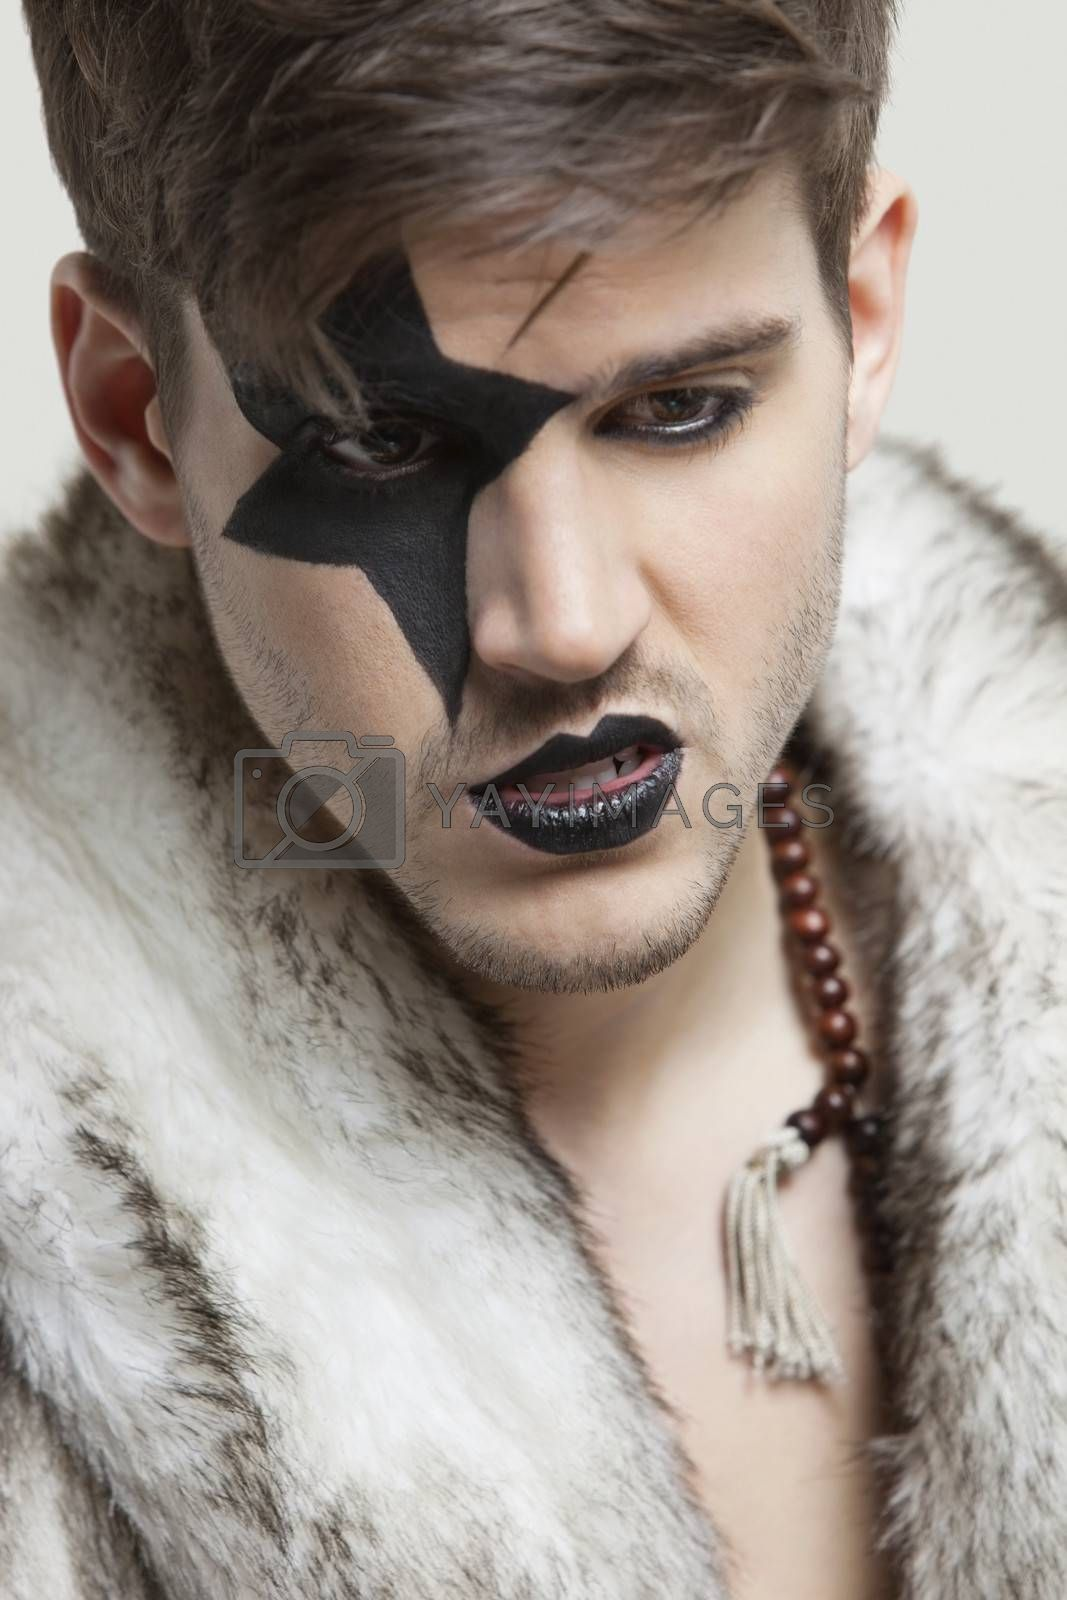 Angry young man with painted face wearing fur coat against gray background